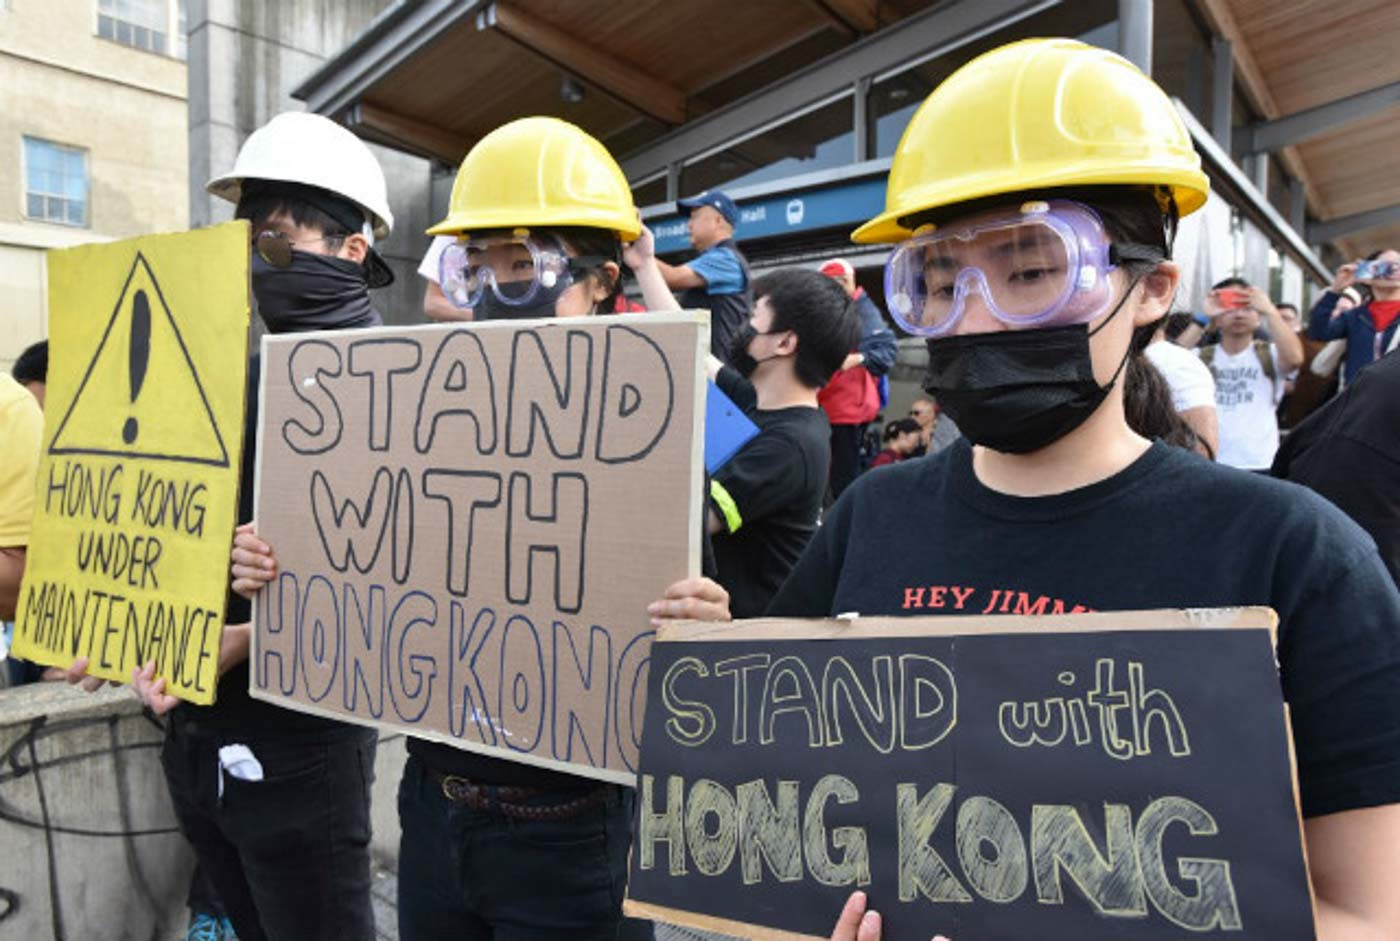 STAND WITH HONG KONG. Pro-Hong Kong supporters hold signs during a rally at the Broadway-City Hall SkyTrain Station in Vancouver, Canada on August 17, 2019. Photo by Don MacKinnon/AFP